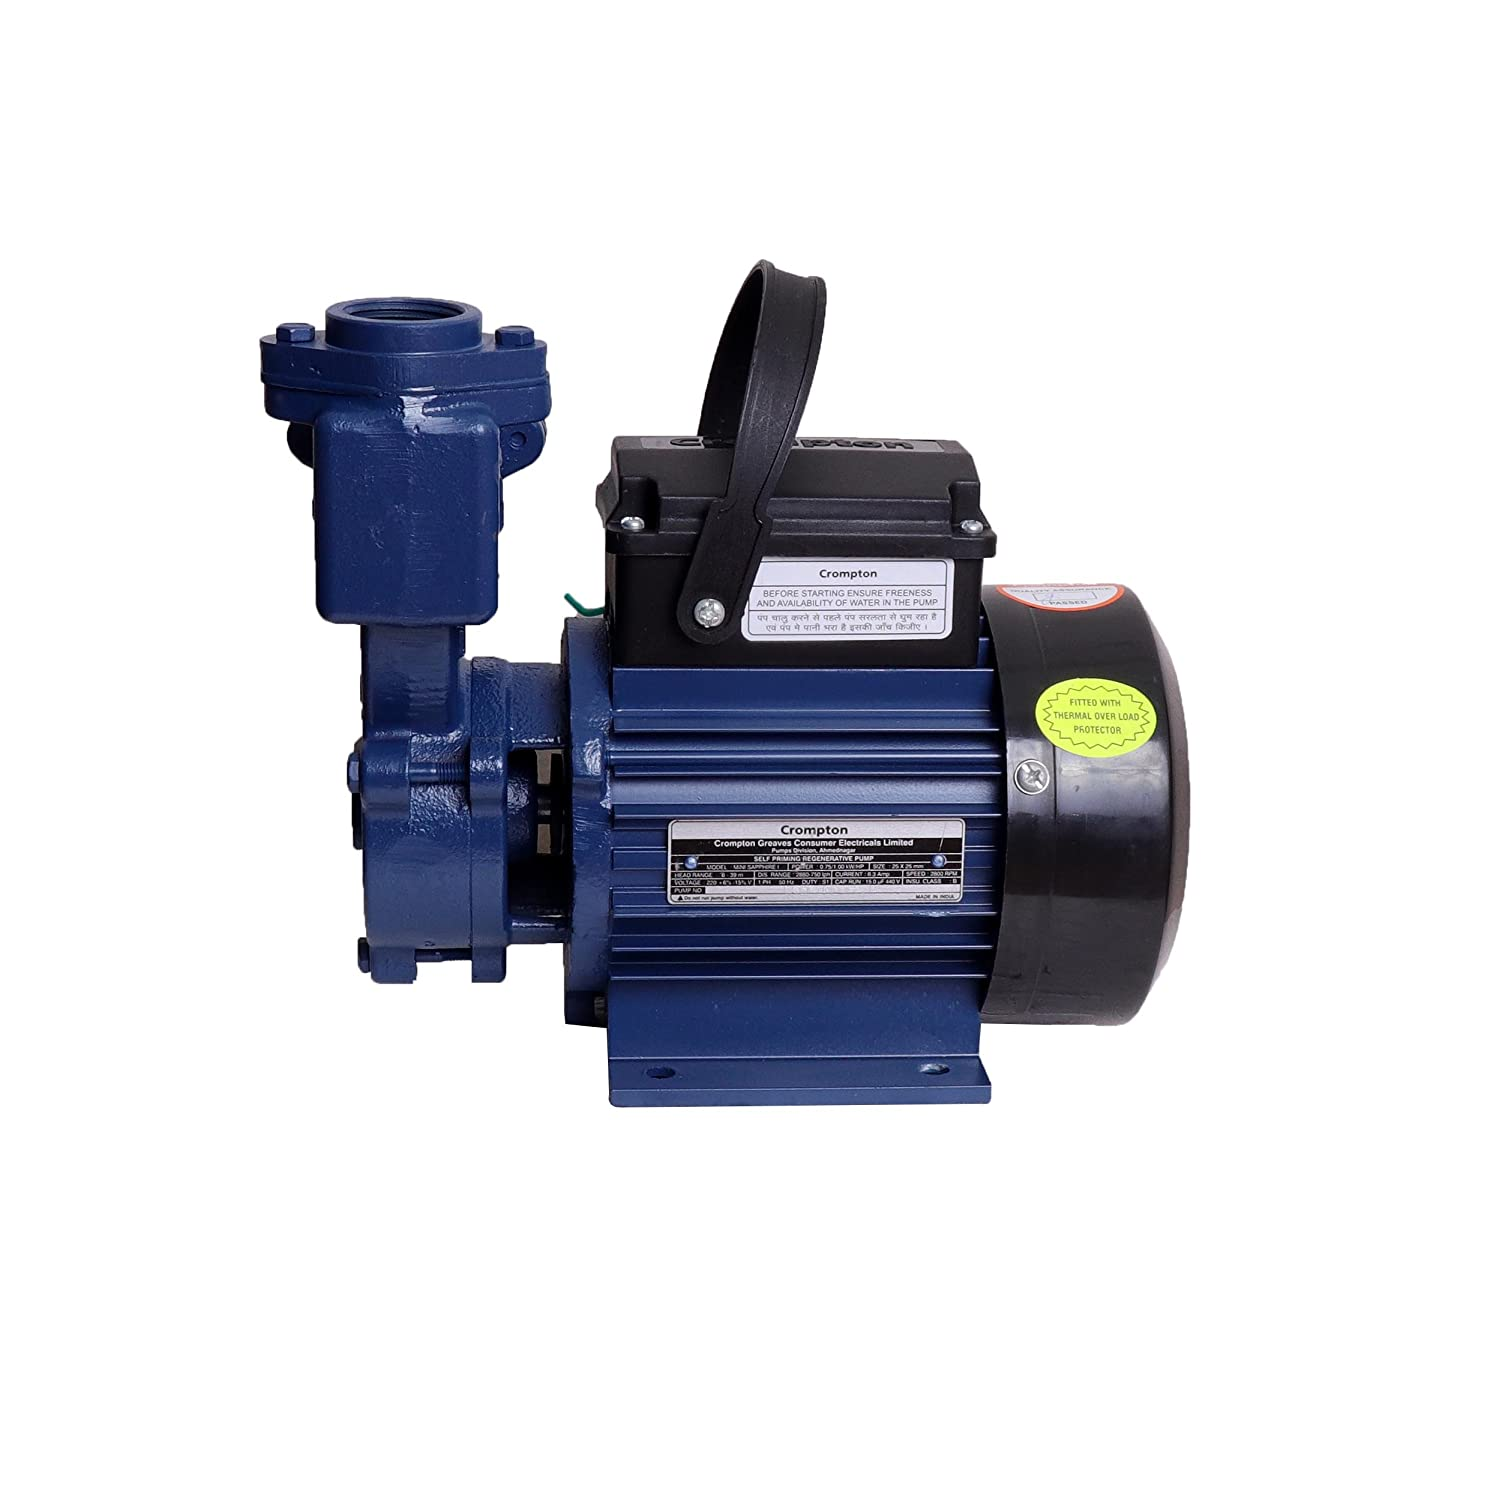 crompton pumps price list 2019